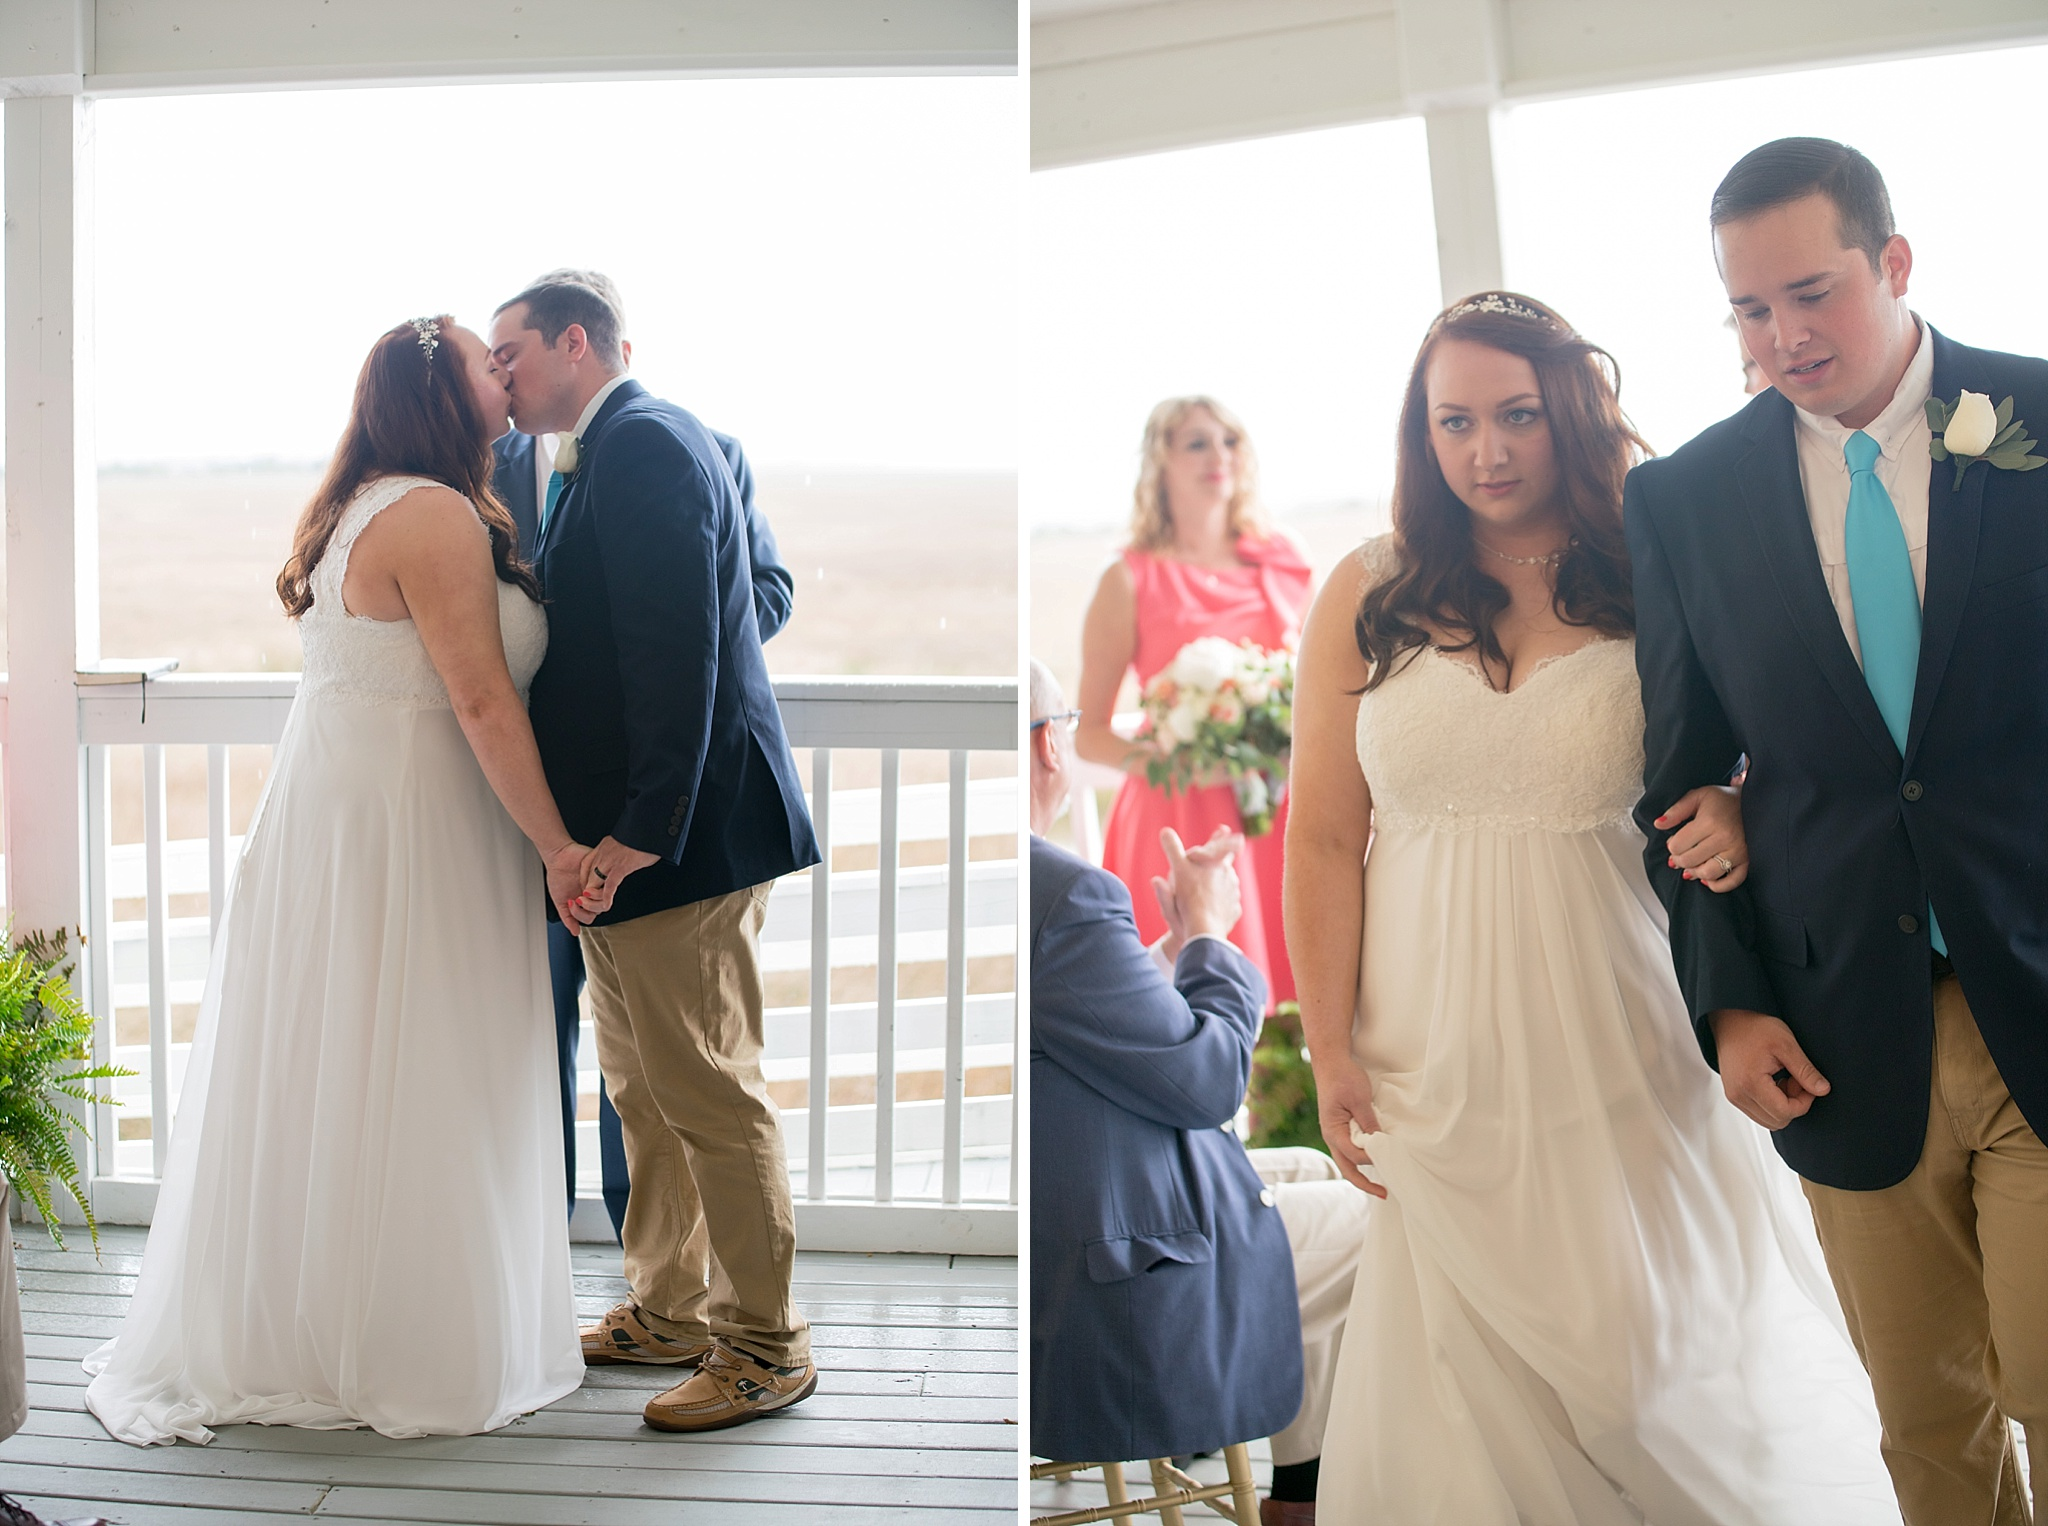 Manteo-NC-Wedding-Photographer-120.jpg